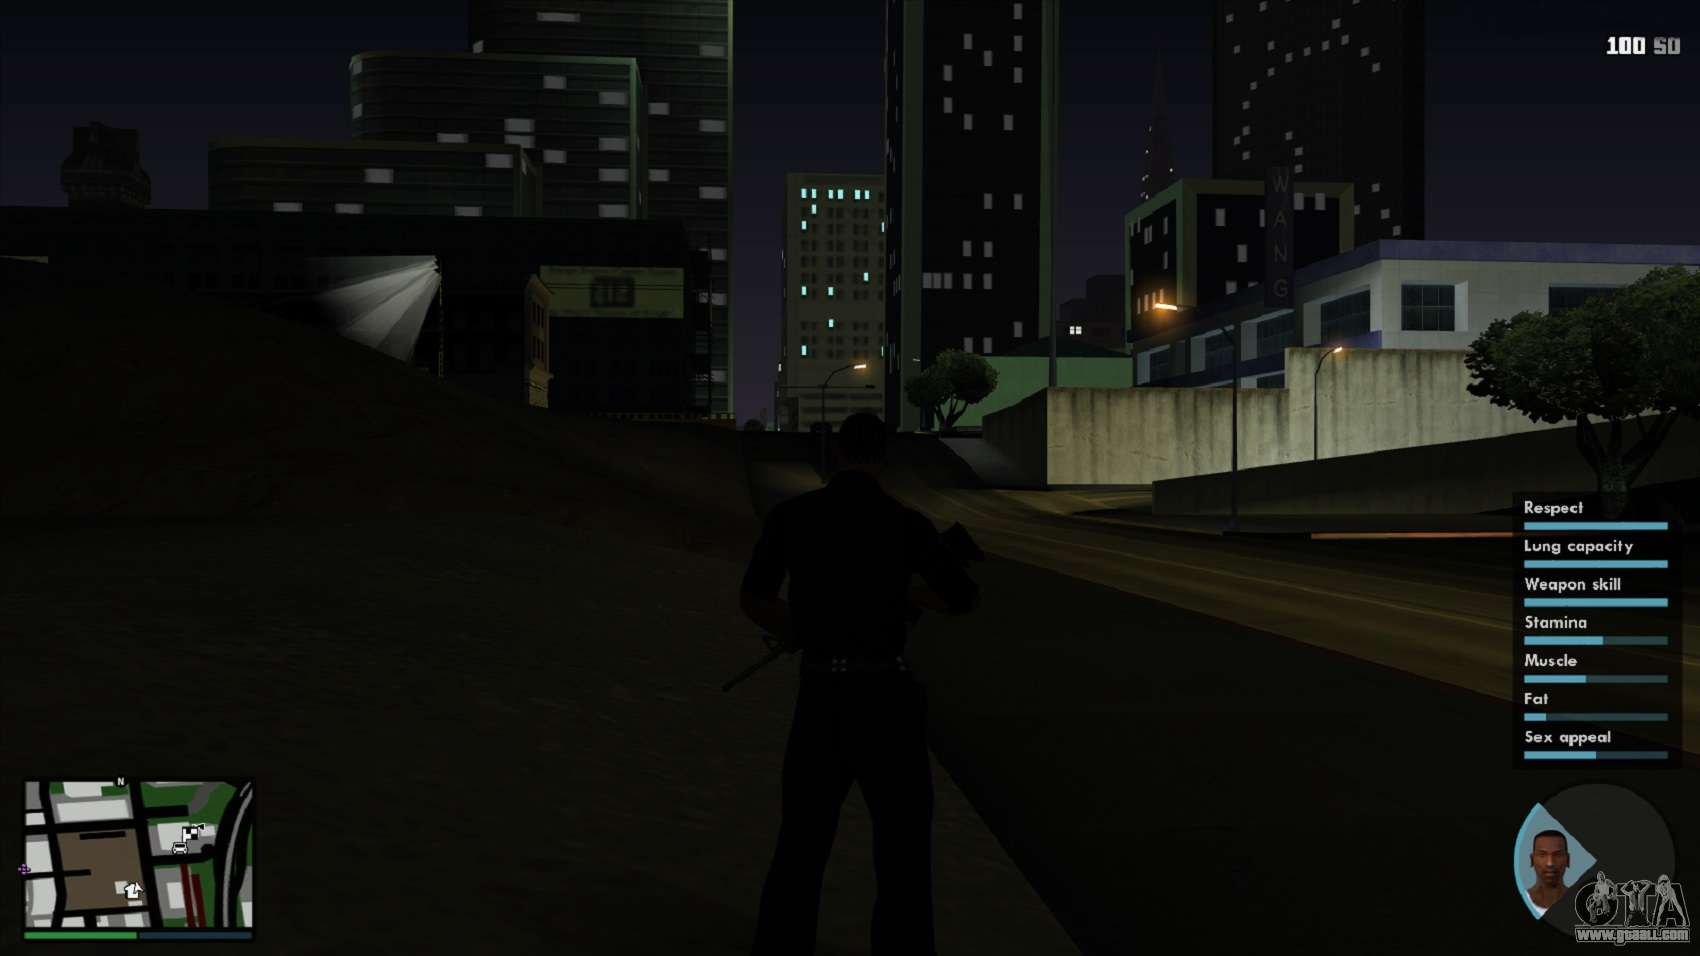 gta 5 san andreas v5.5 apk + data mod gta 5